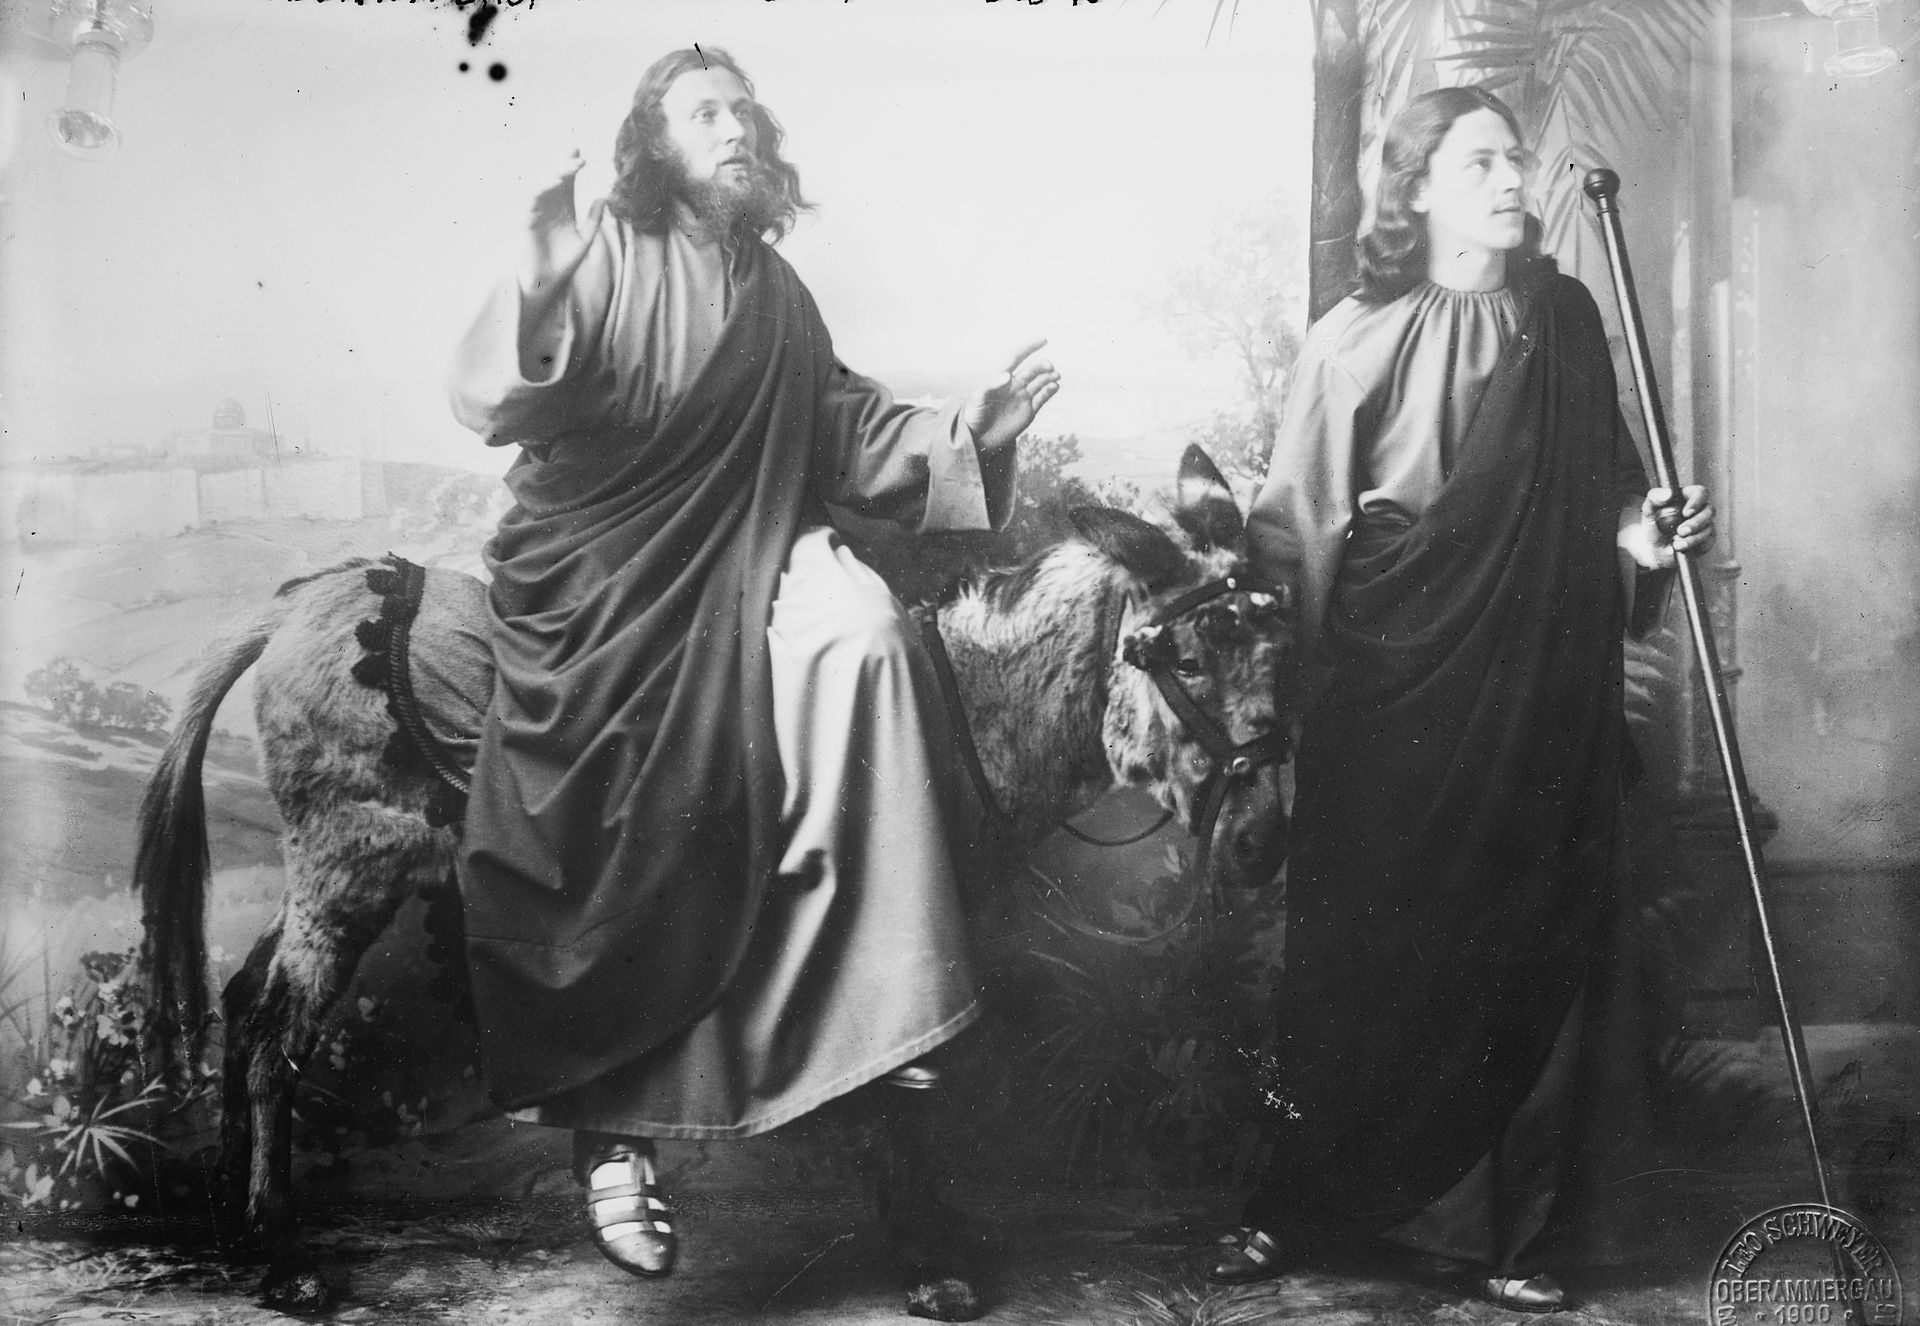 Jesus Christ and John in a 1900 performance of the Oberammergau Passion Play